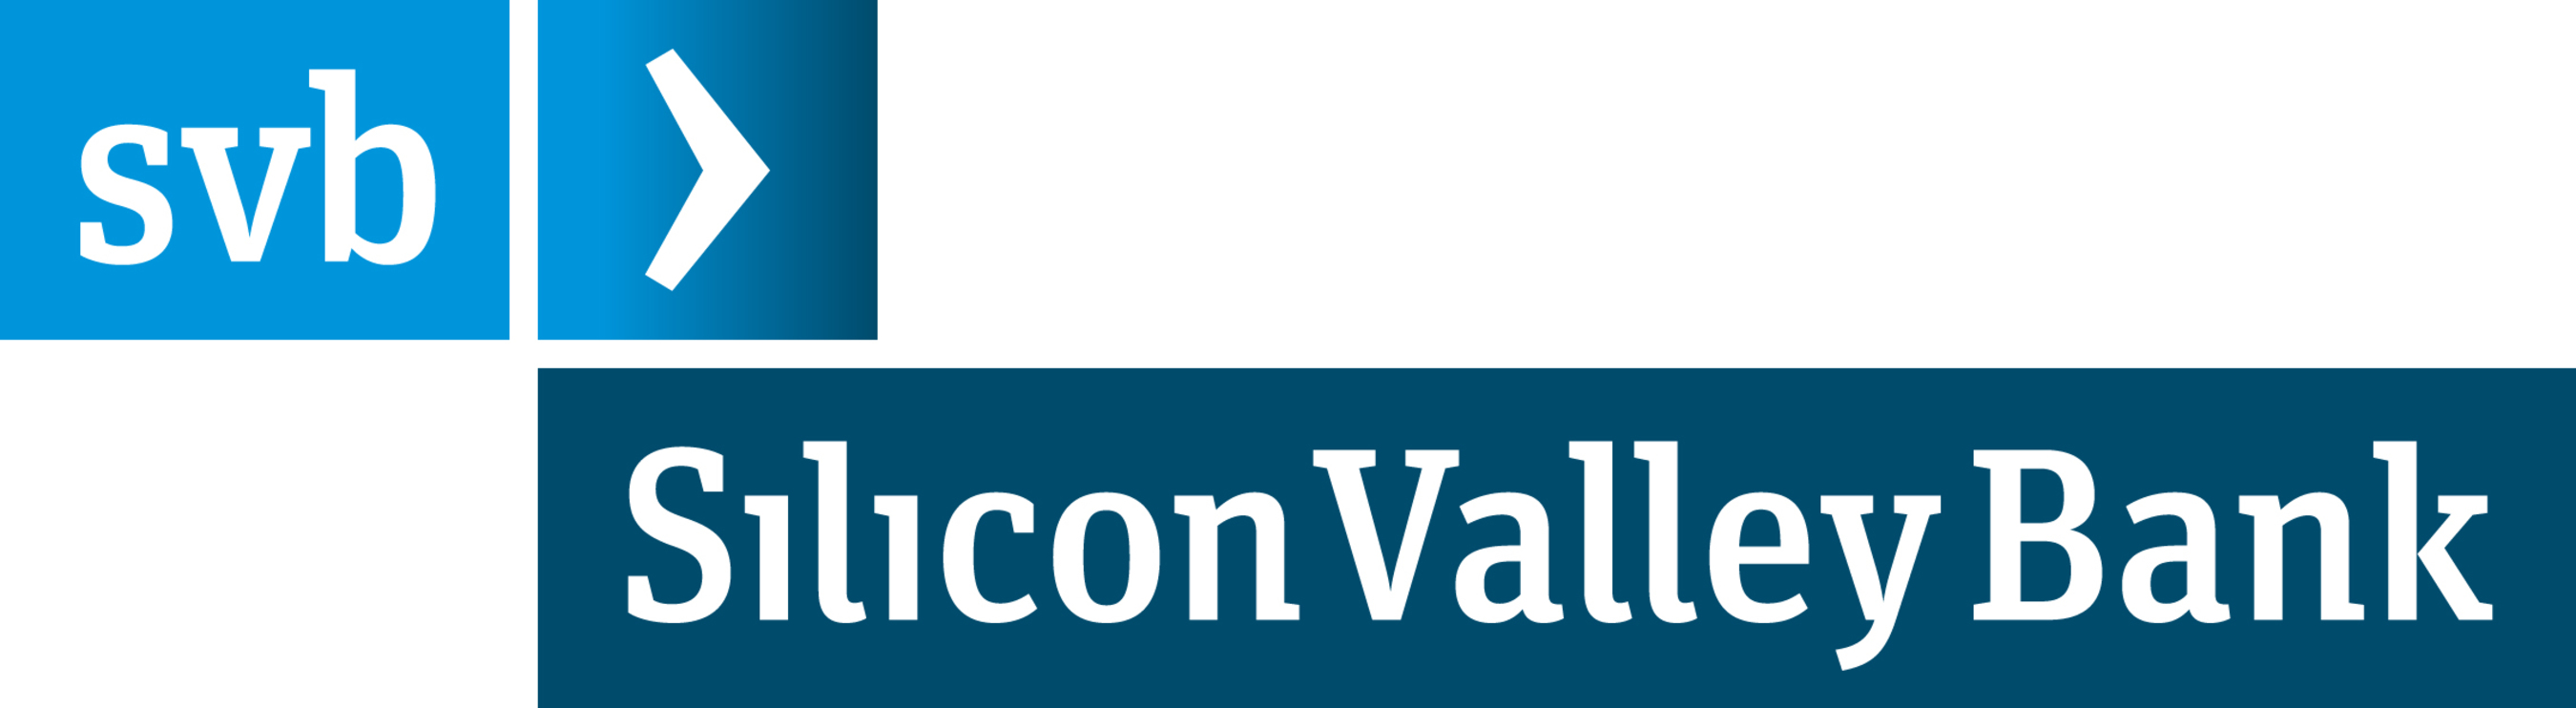 Silicon Valley Bank logo.